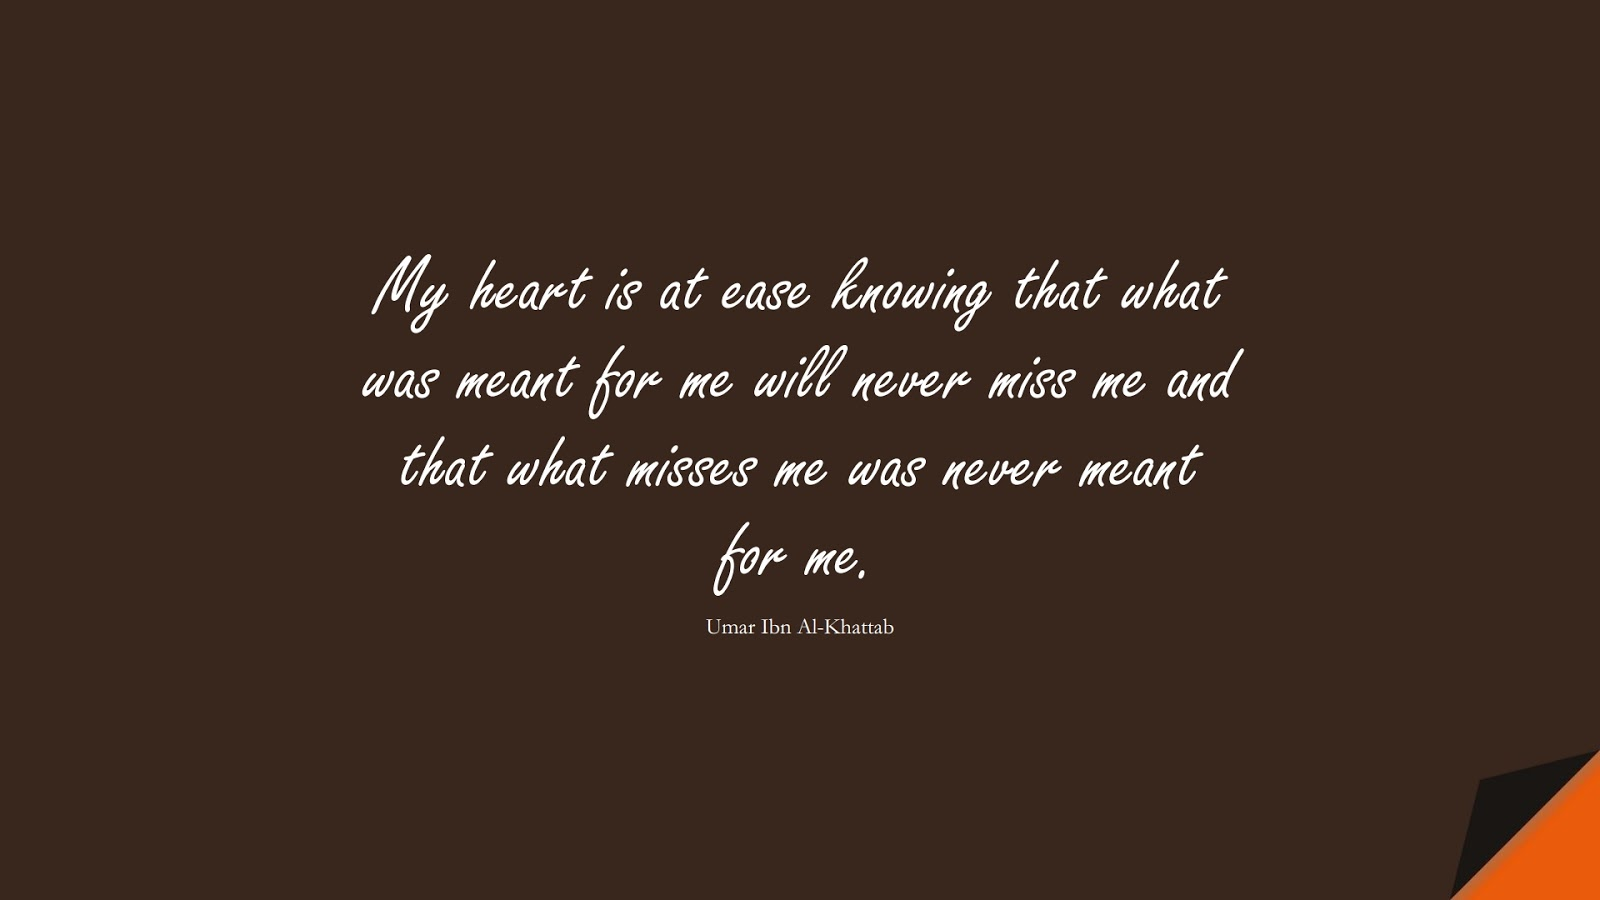 My heart is at ease knowing that what was meant for me will never miss me and that what misses me was never meant for me. (Umar Ibn Al-Khattab);  #UmarQuotes